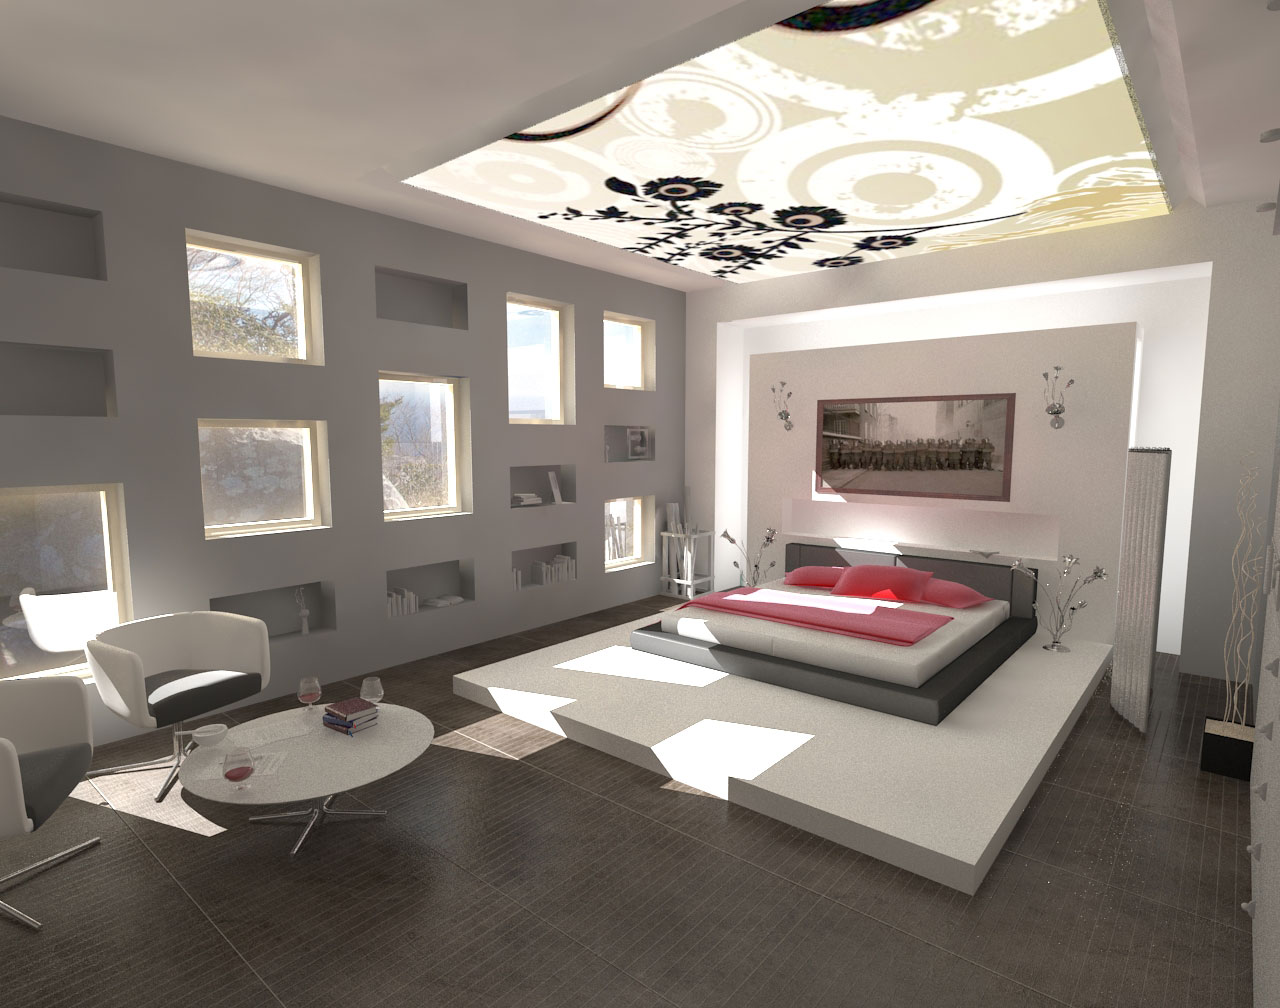 Fantastic modern bedroom paints colors ideas interior for Modern interior ideas